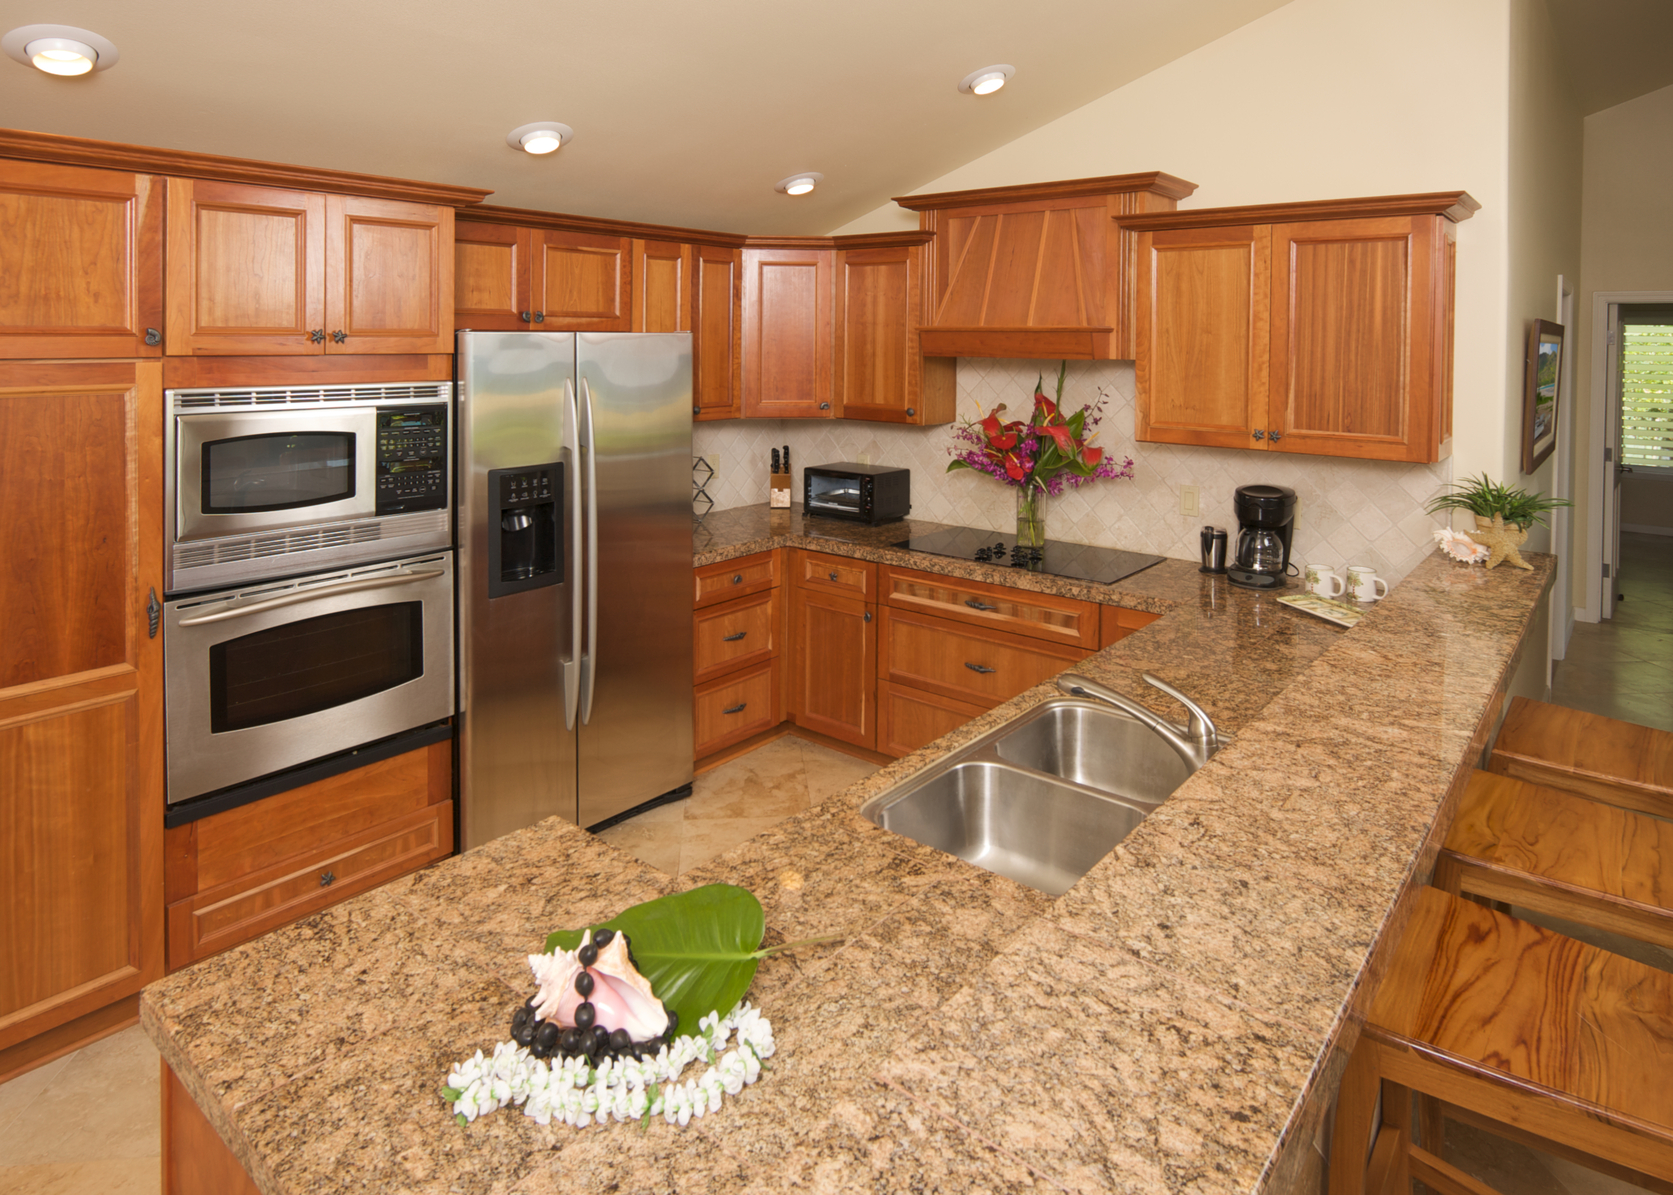 how much to remodel a kitchen small kitchen remodel cost How much does it cost to remodel a kitchen ybS